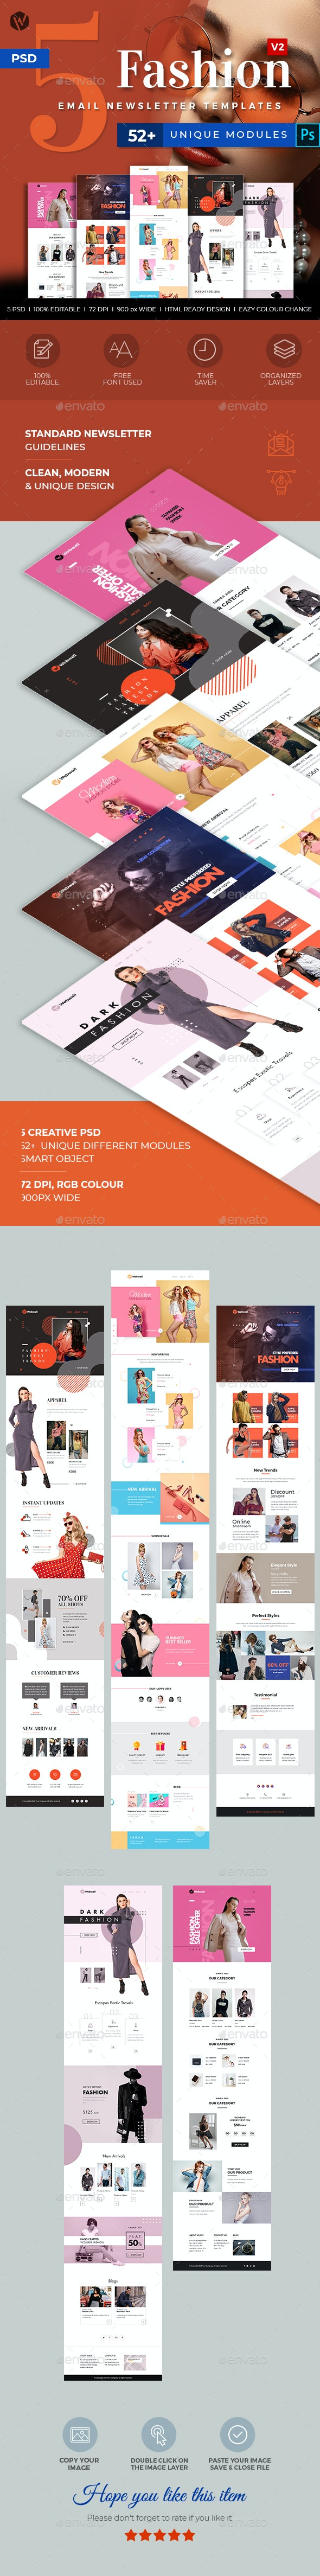 5 Fashion Email Newsletter PSD Templates v2 - E-newsletters Web Elements